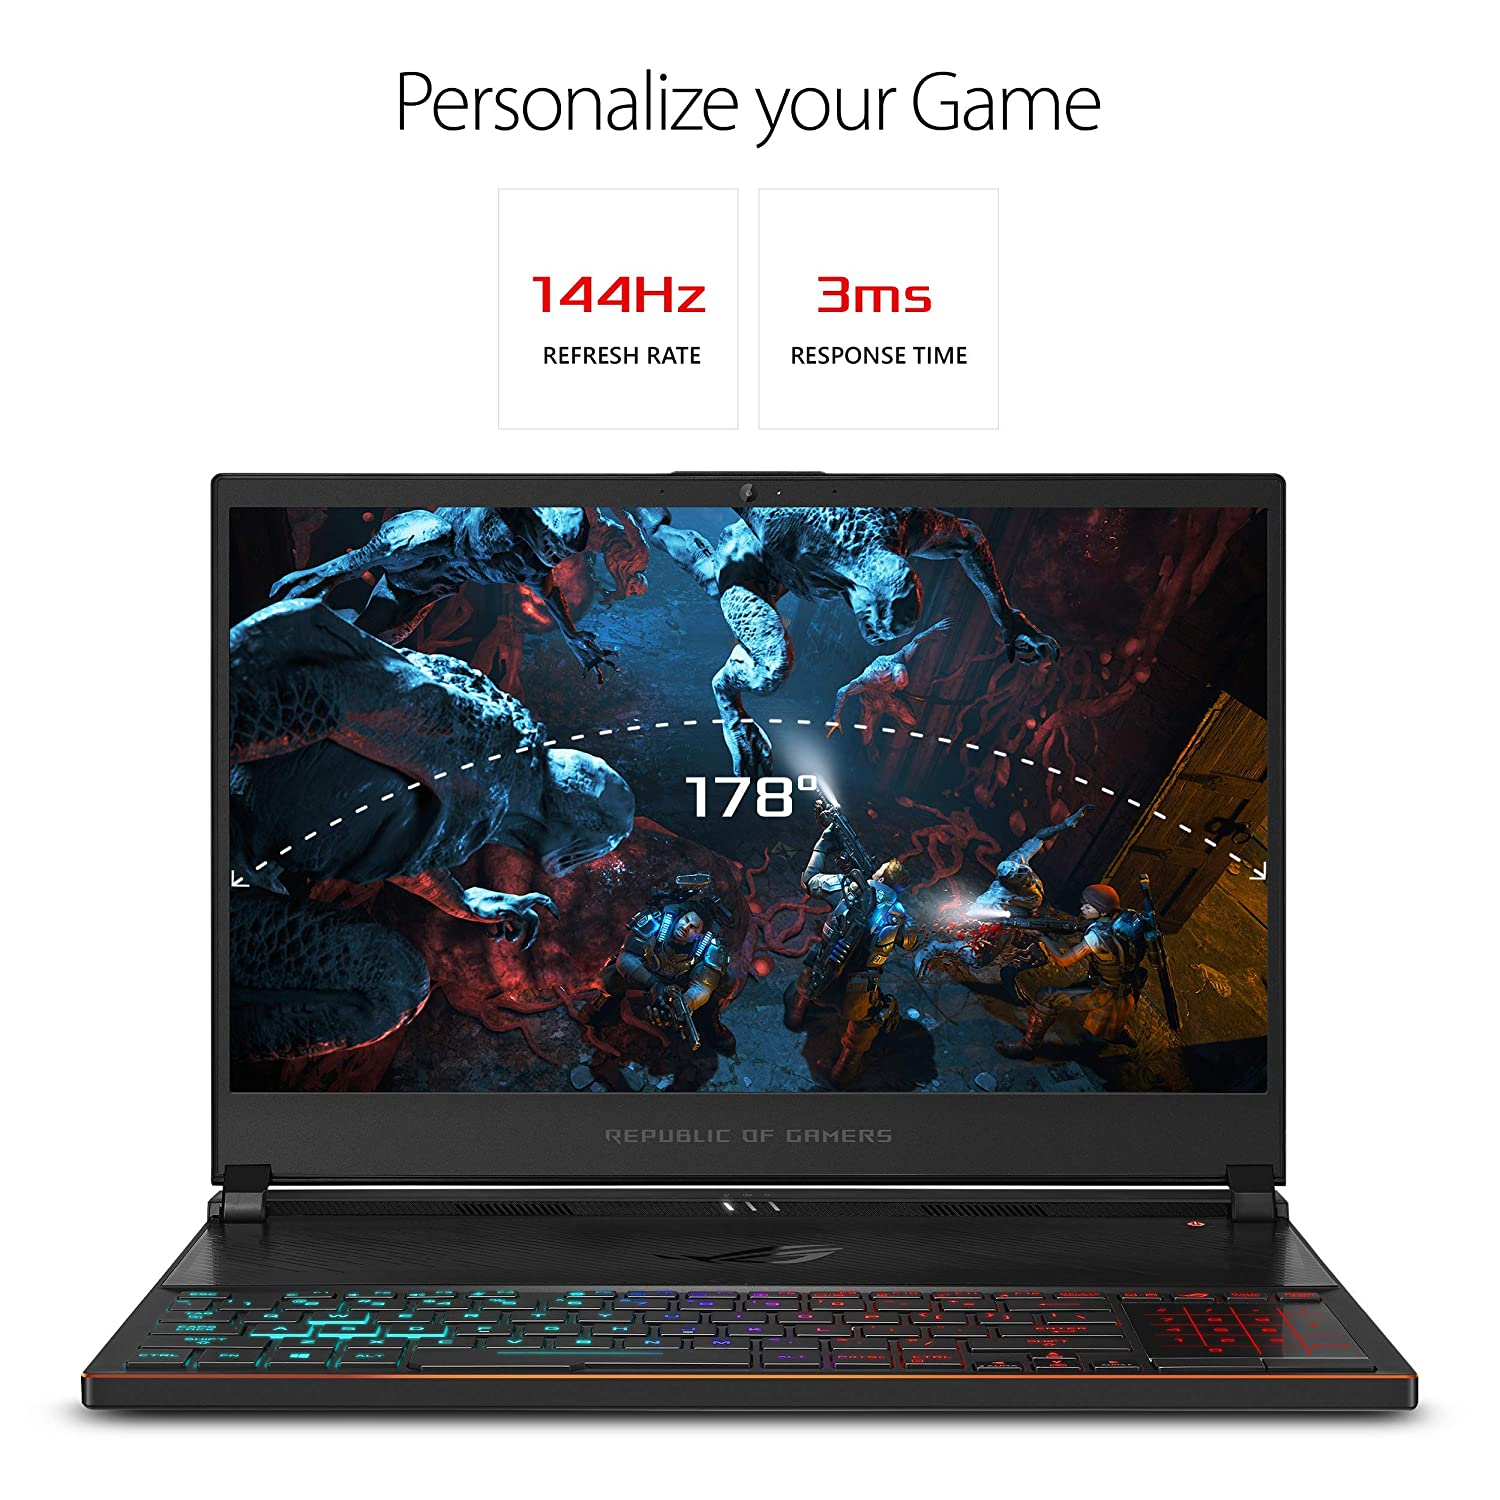 ASUS ROG Zephyrus S Ultra Slim Gaming PC Laptop, 15.6in 144Hz IPS-Type, Intel i7-8750H GeForce GTX 1070, 16GB DDR4, 512GB NVMe SSD Win 10 Home- GX531GS-AH76 Renewed